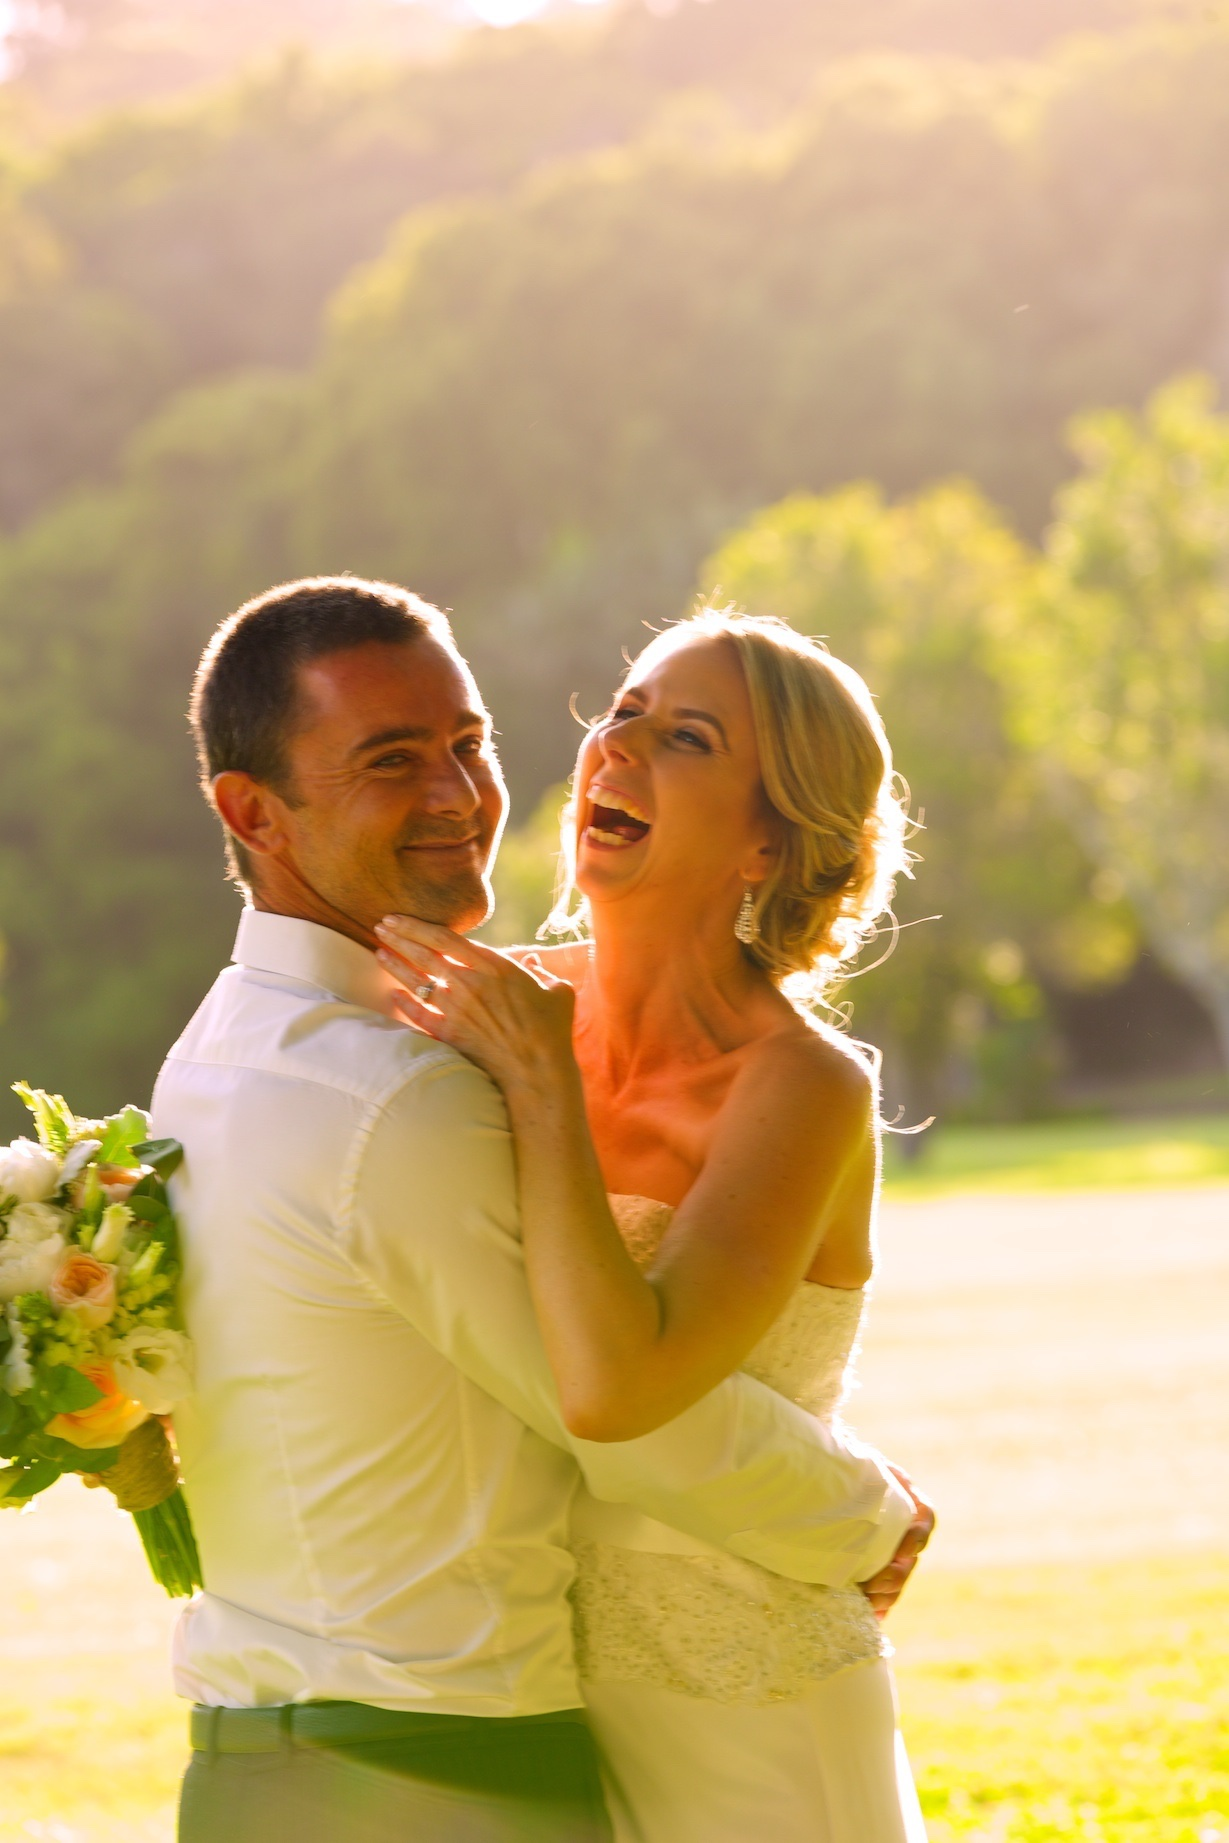 Wedding photography in nature setting